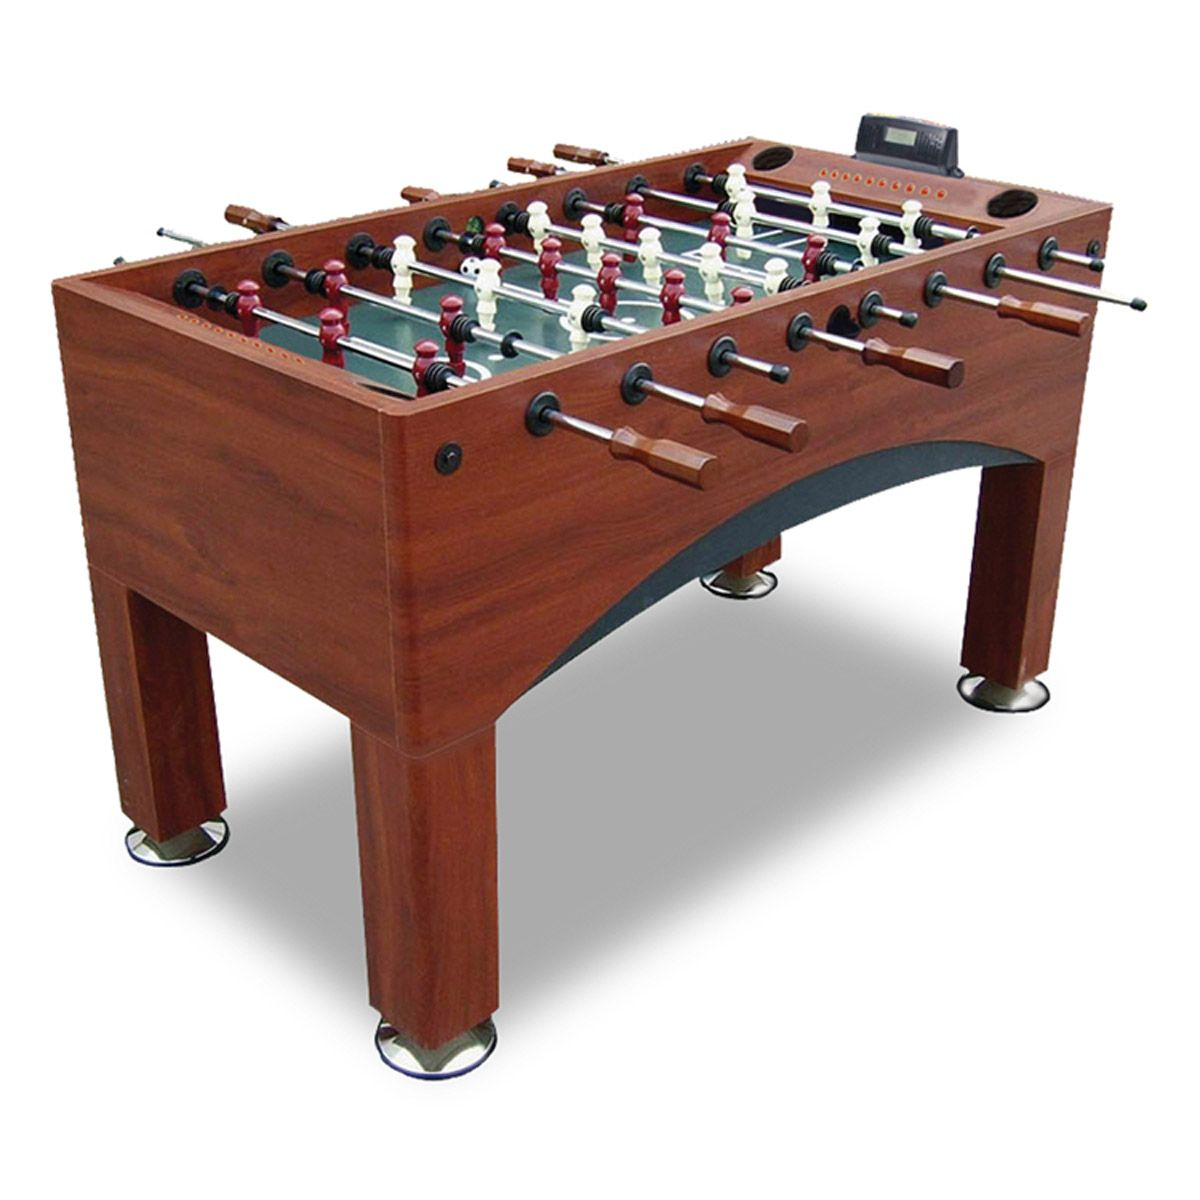 Adjustable Electronic Goal Foosball Table